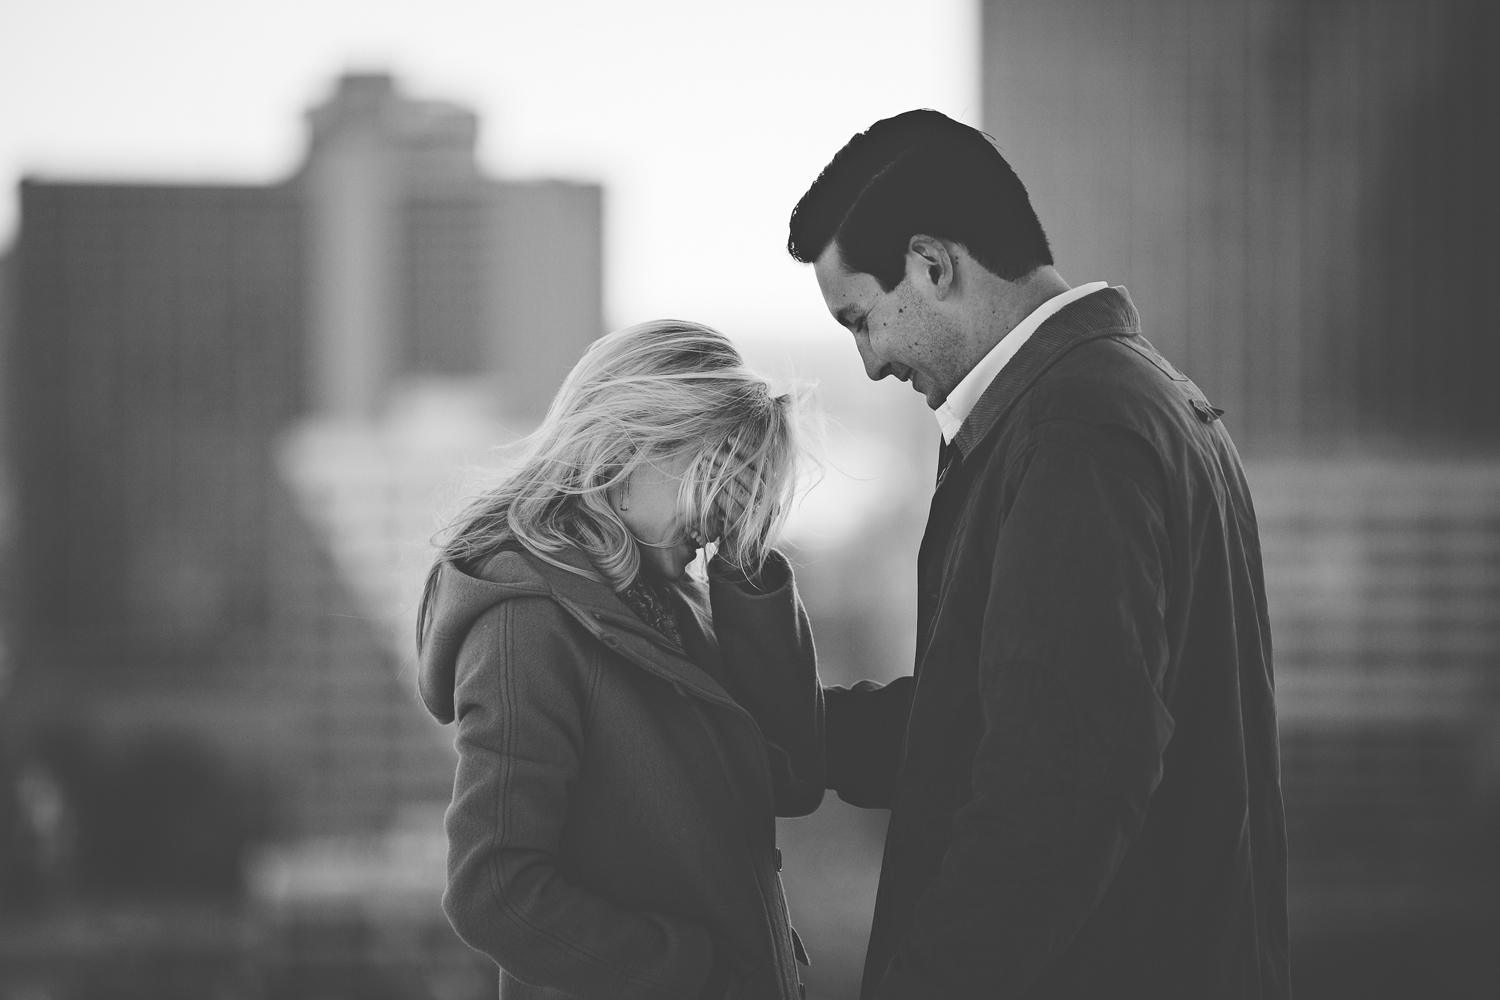 KDP_claire&drew - the proposal-54.jpg